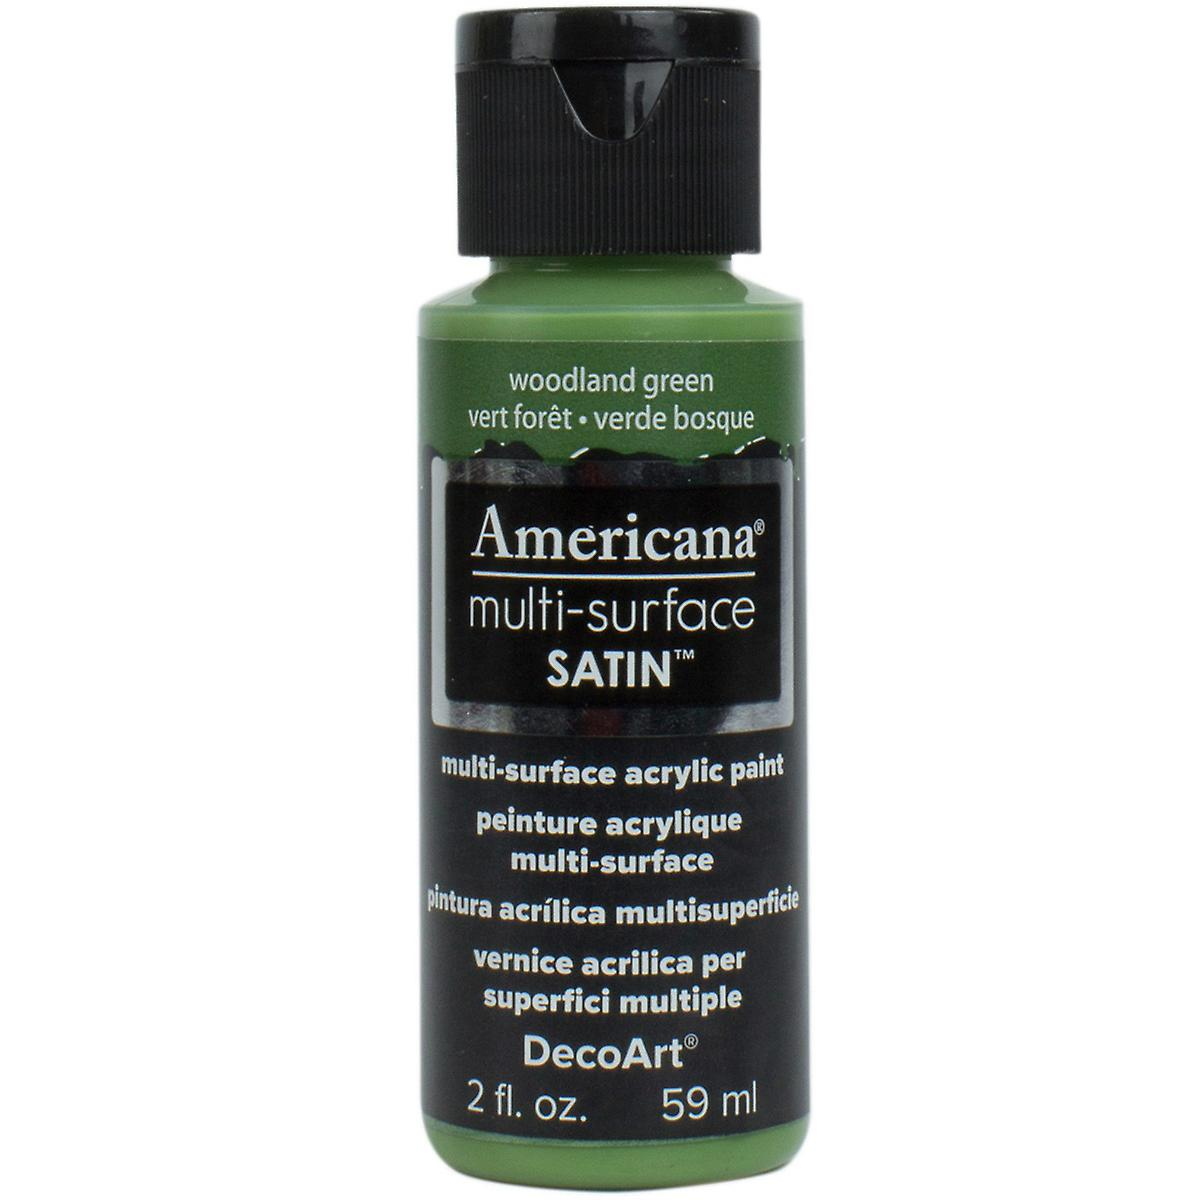 Americana Multi-Surface Acrylic Paint - Woodland Green